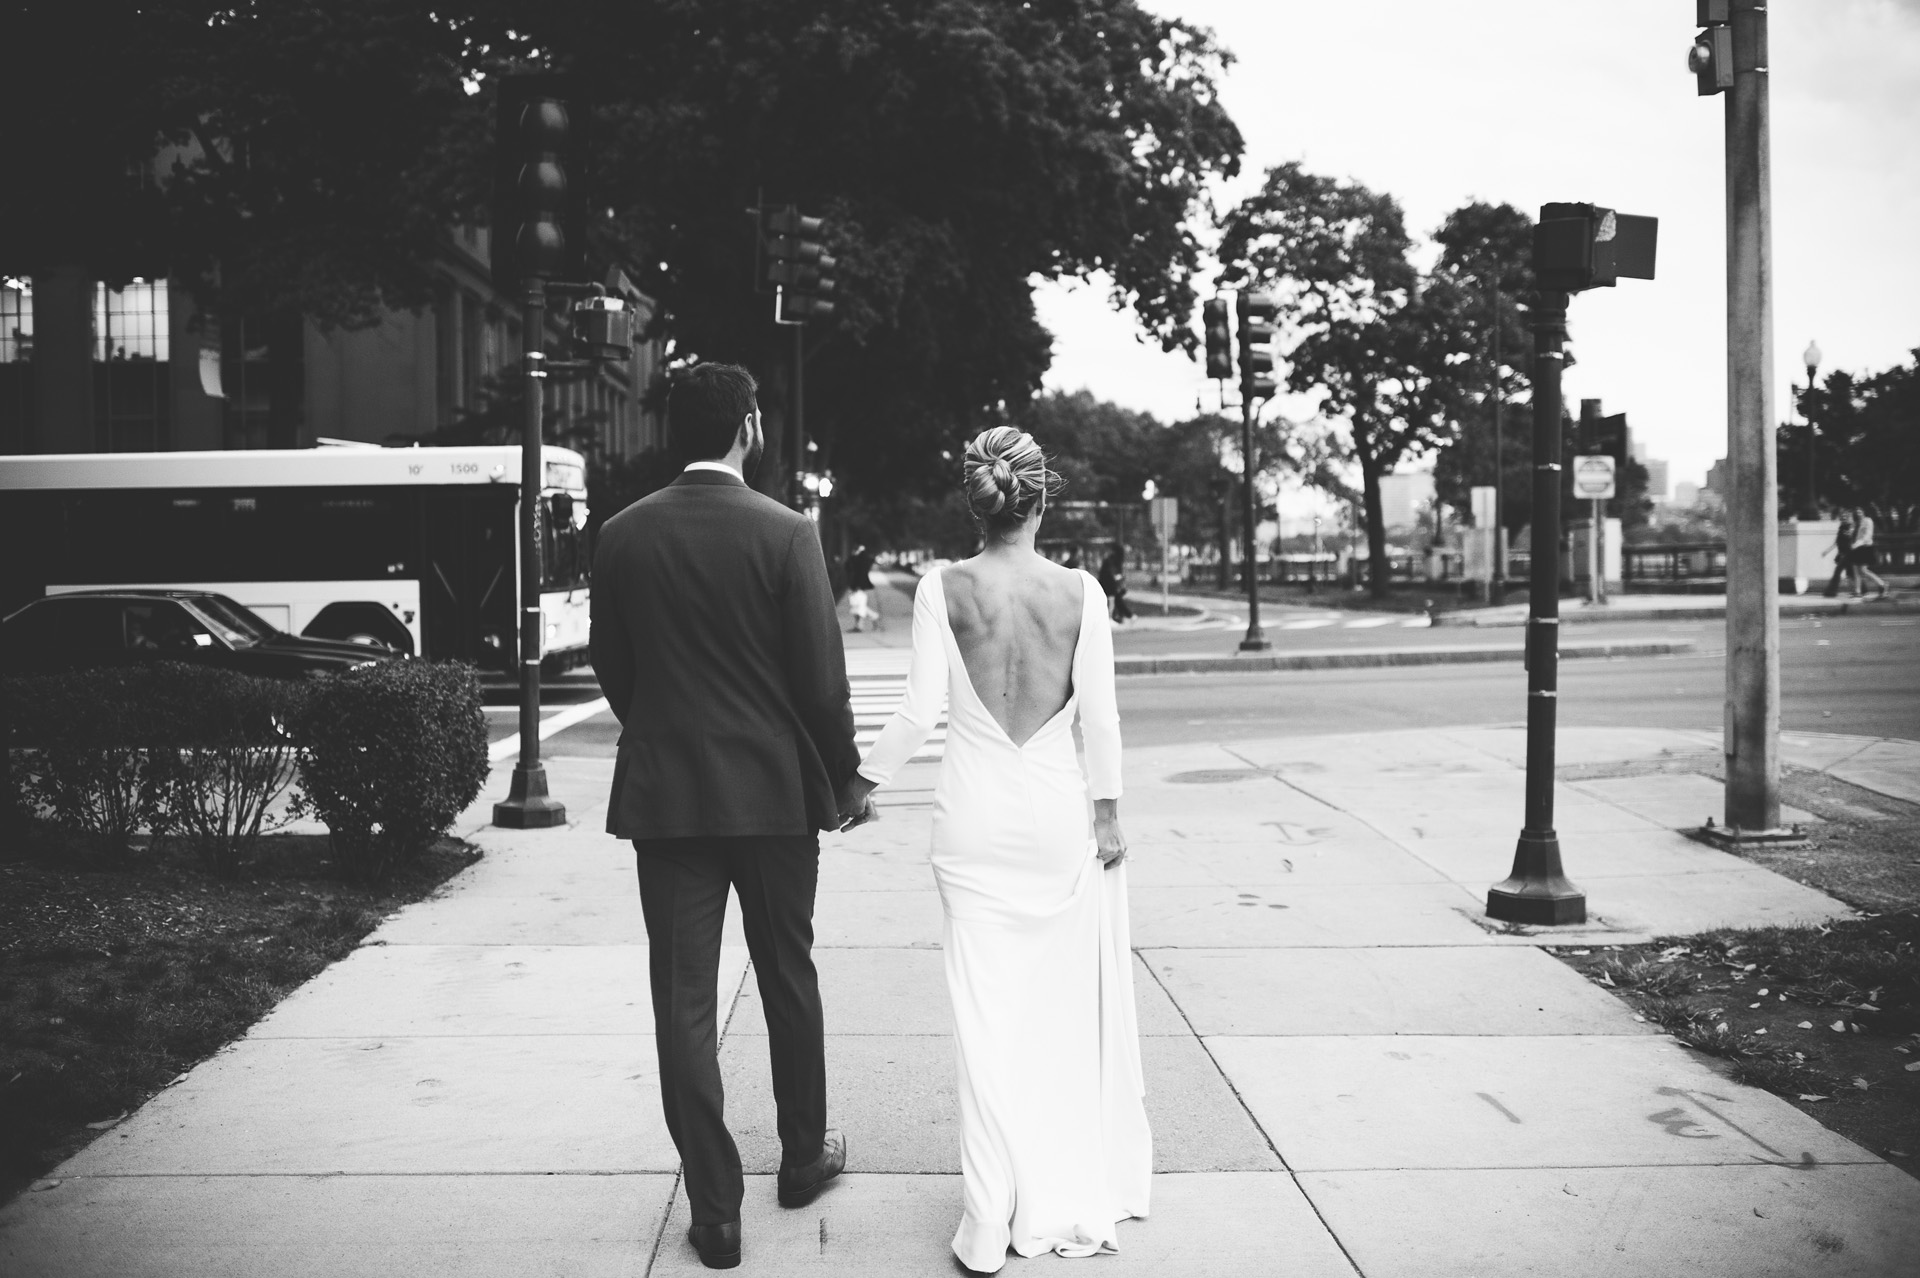 la-brasa-somerville-wedding-302